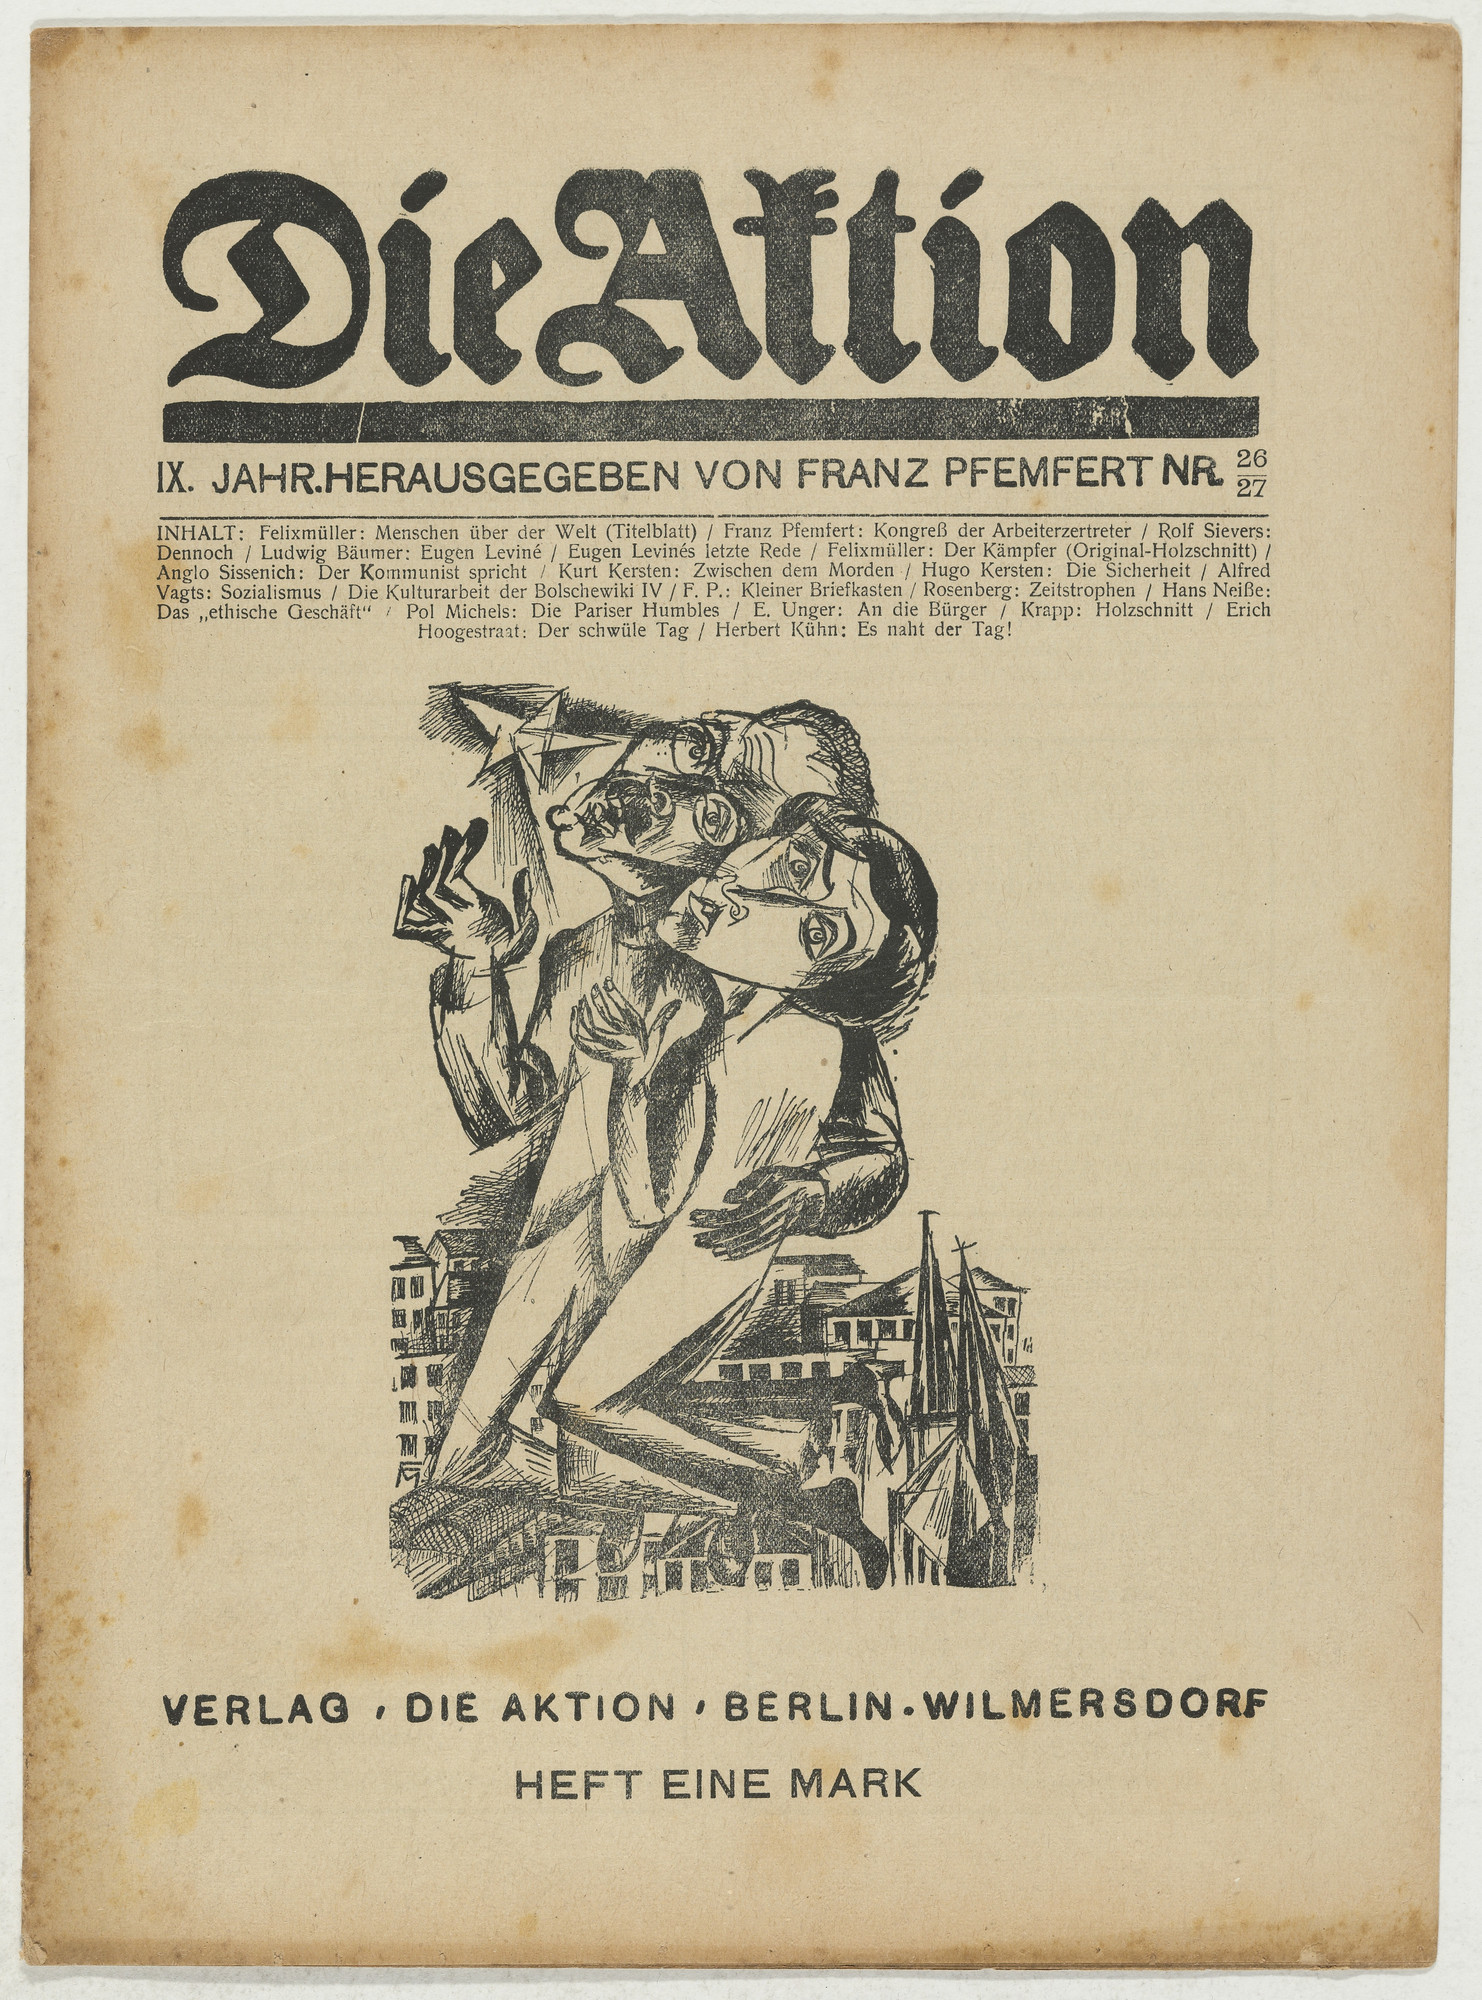 Conrad Felixmüller, A. Krapp. Die Aktion, vol. 9, no. 26/27. July 5, 1919